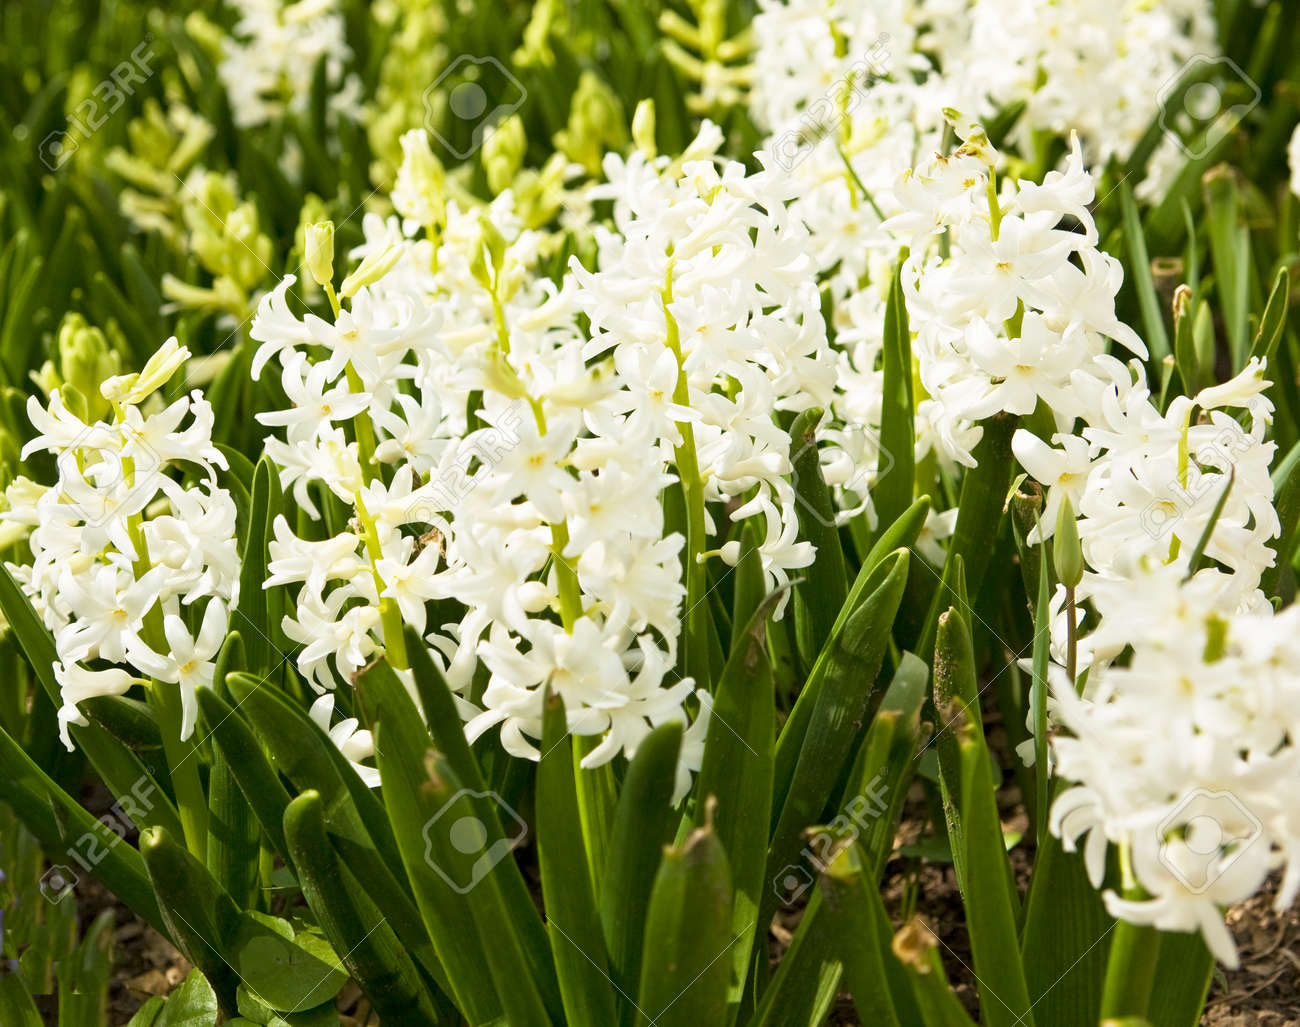 Flower Bed With Many Flowers Hyacinth Of White Colour Stock Photo